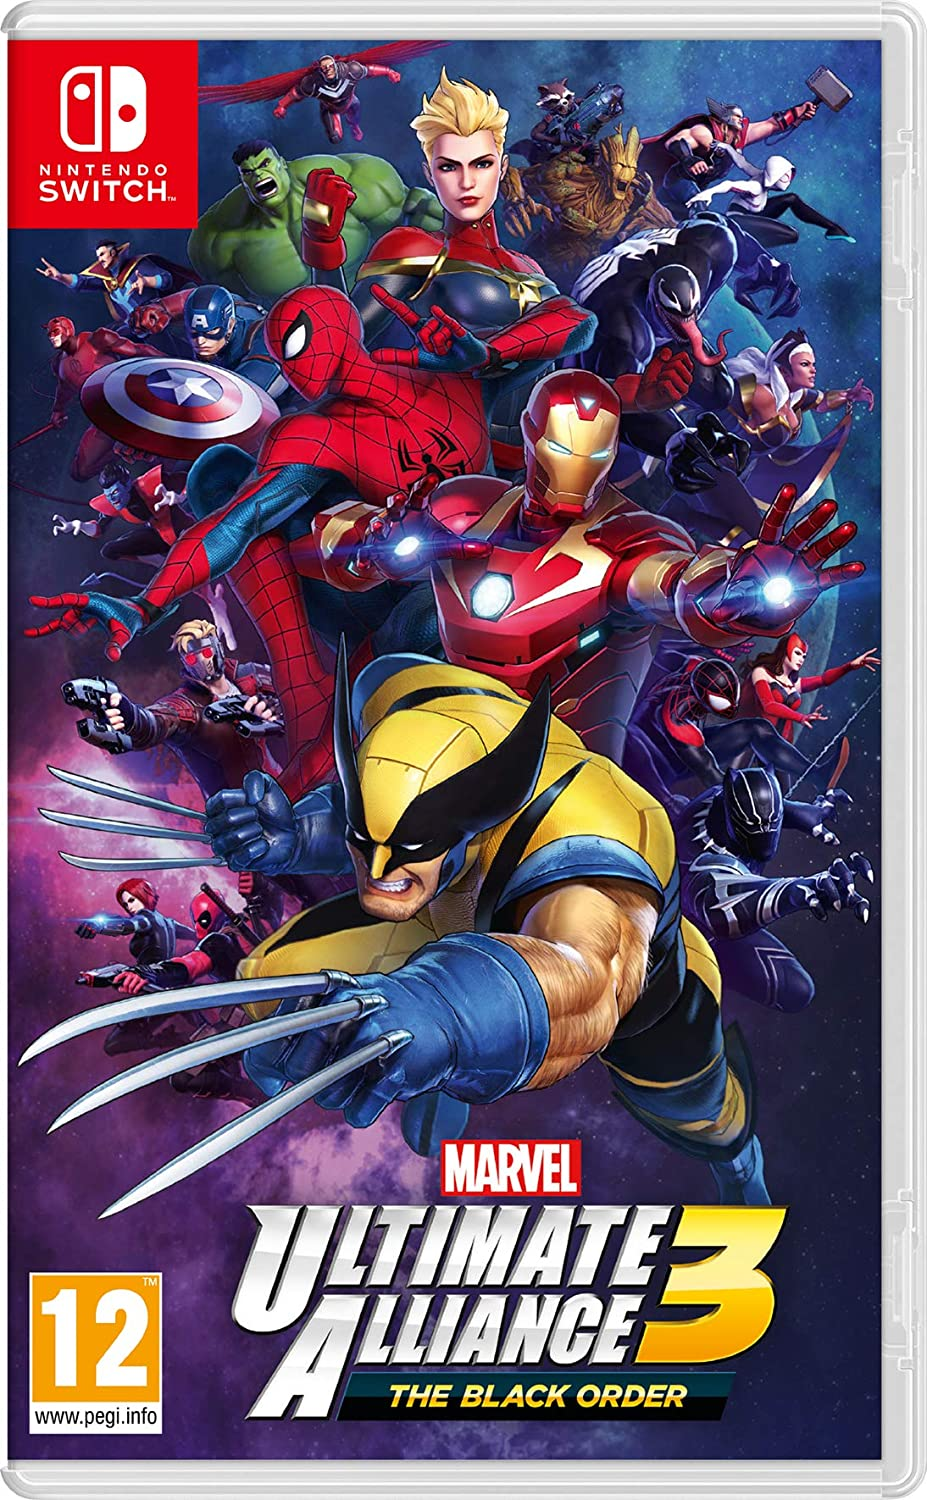 Marvel Ultimate Alliance 3: Amazon.es: Videojuegos